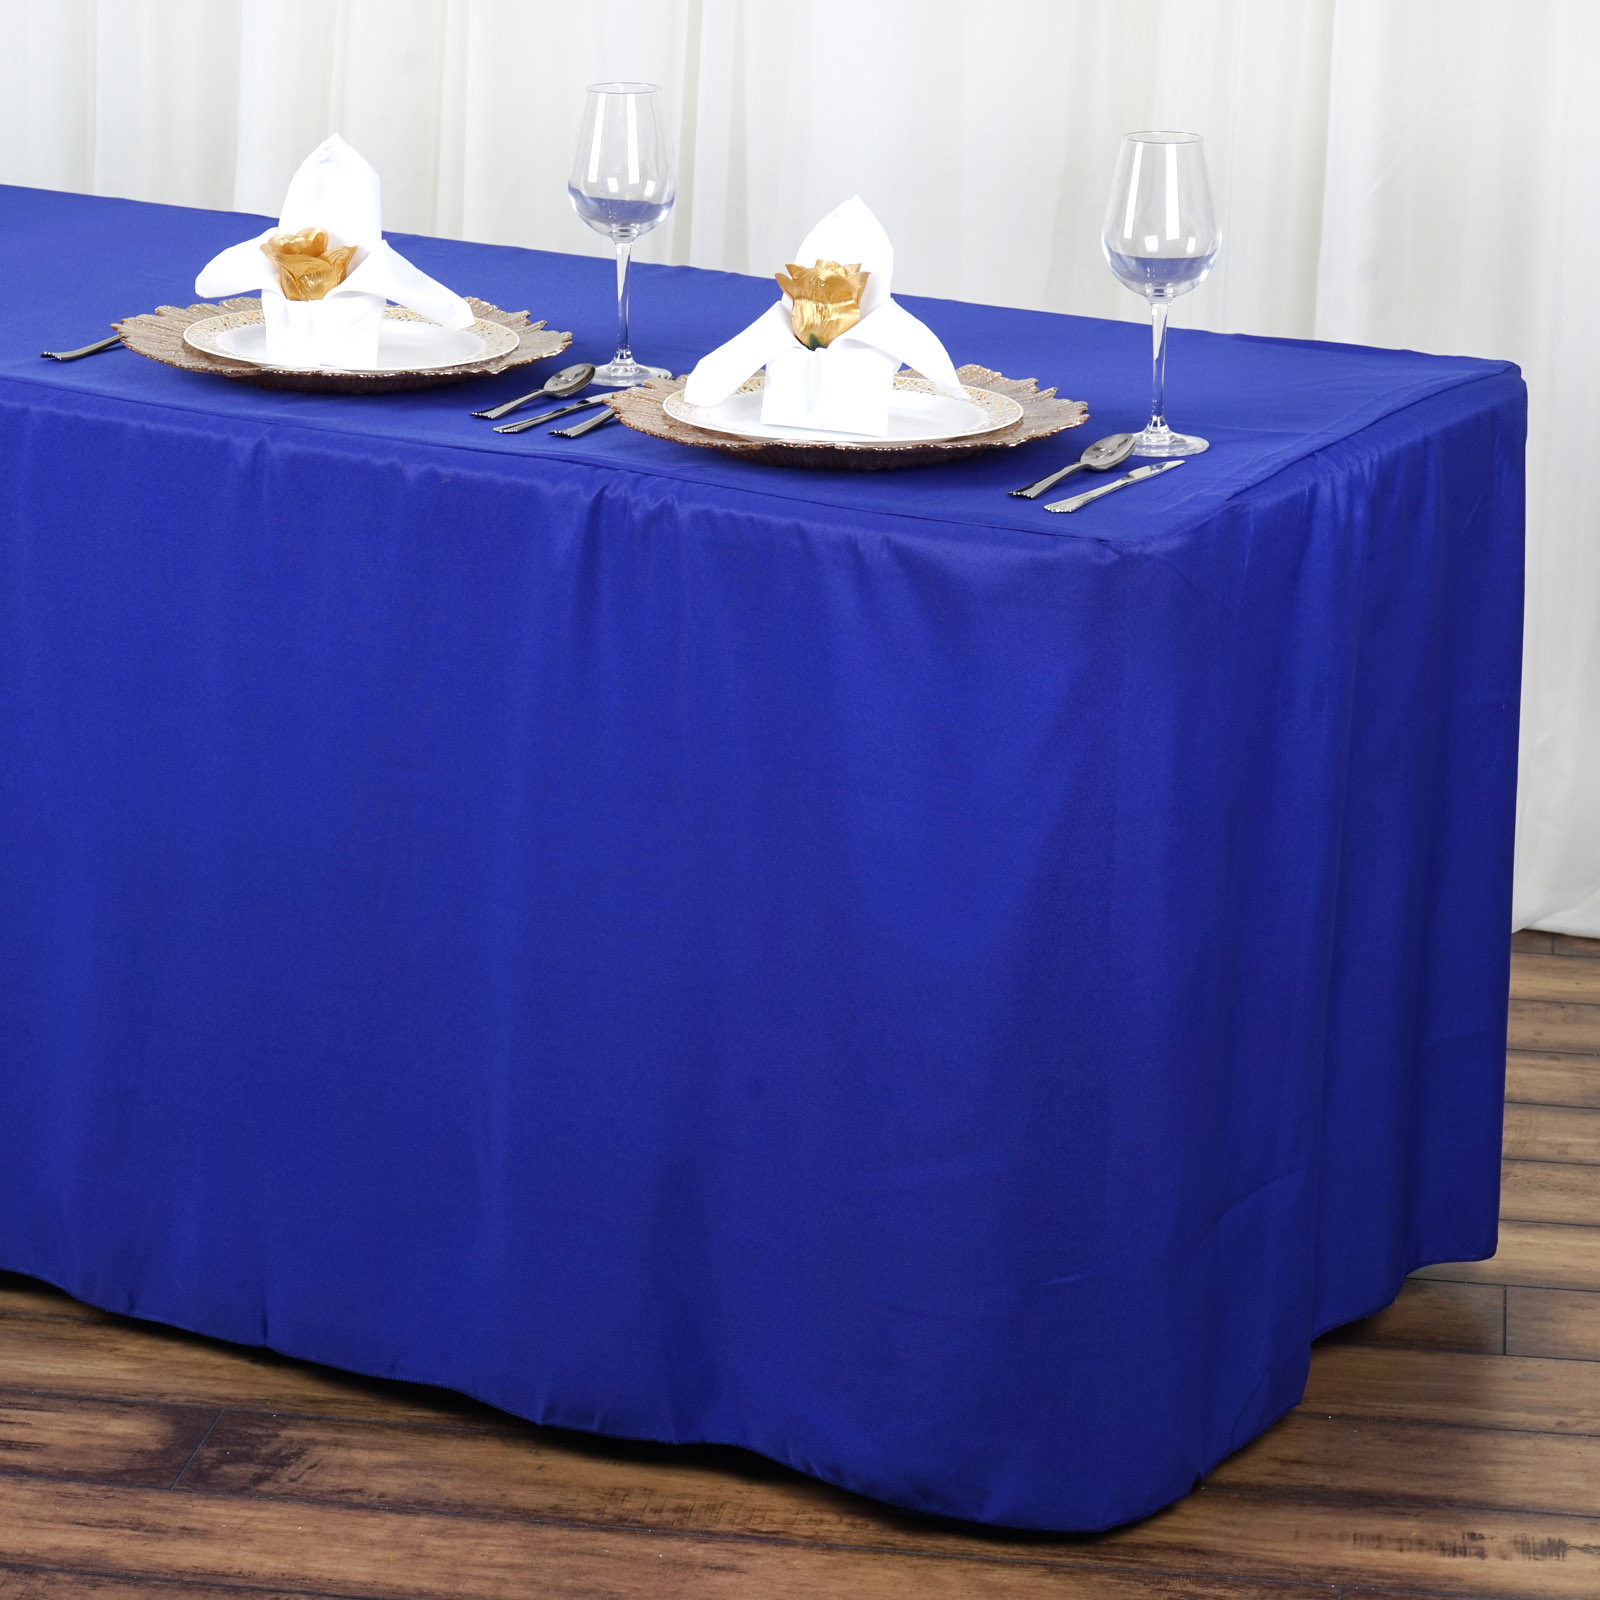 BalsaCircle 6 feet Fitted Polyester Tablecloth - Wedding Party Trade Show Booth Events Birthday Table Linens Decorations